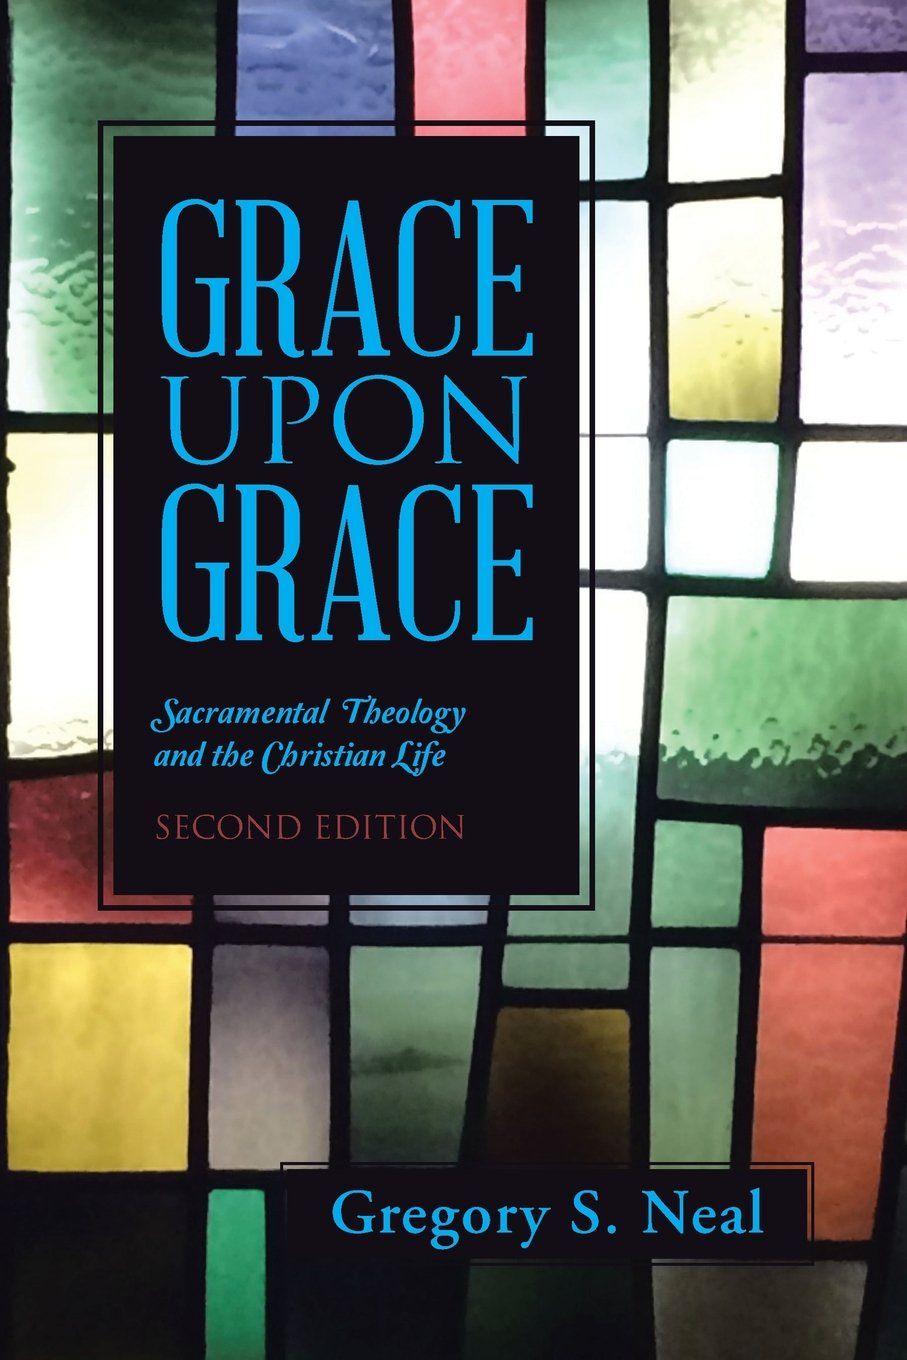 Grace Upon Grace: Sacramental Theology and the Christian Life by Gregory S. Neal